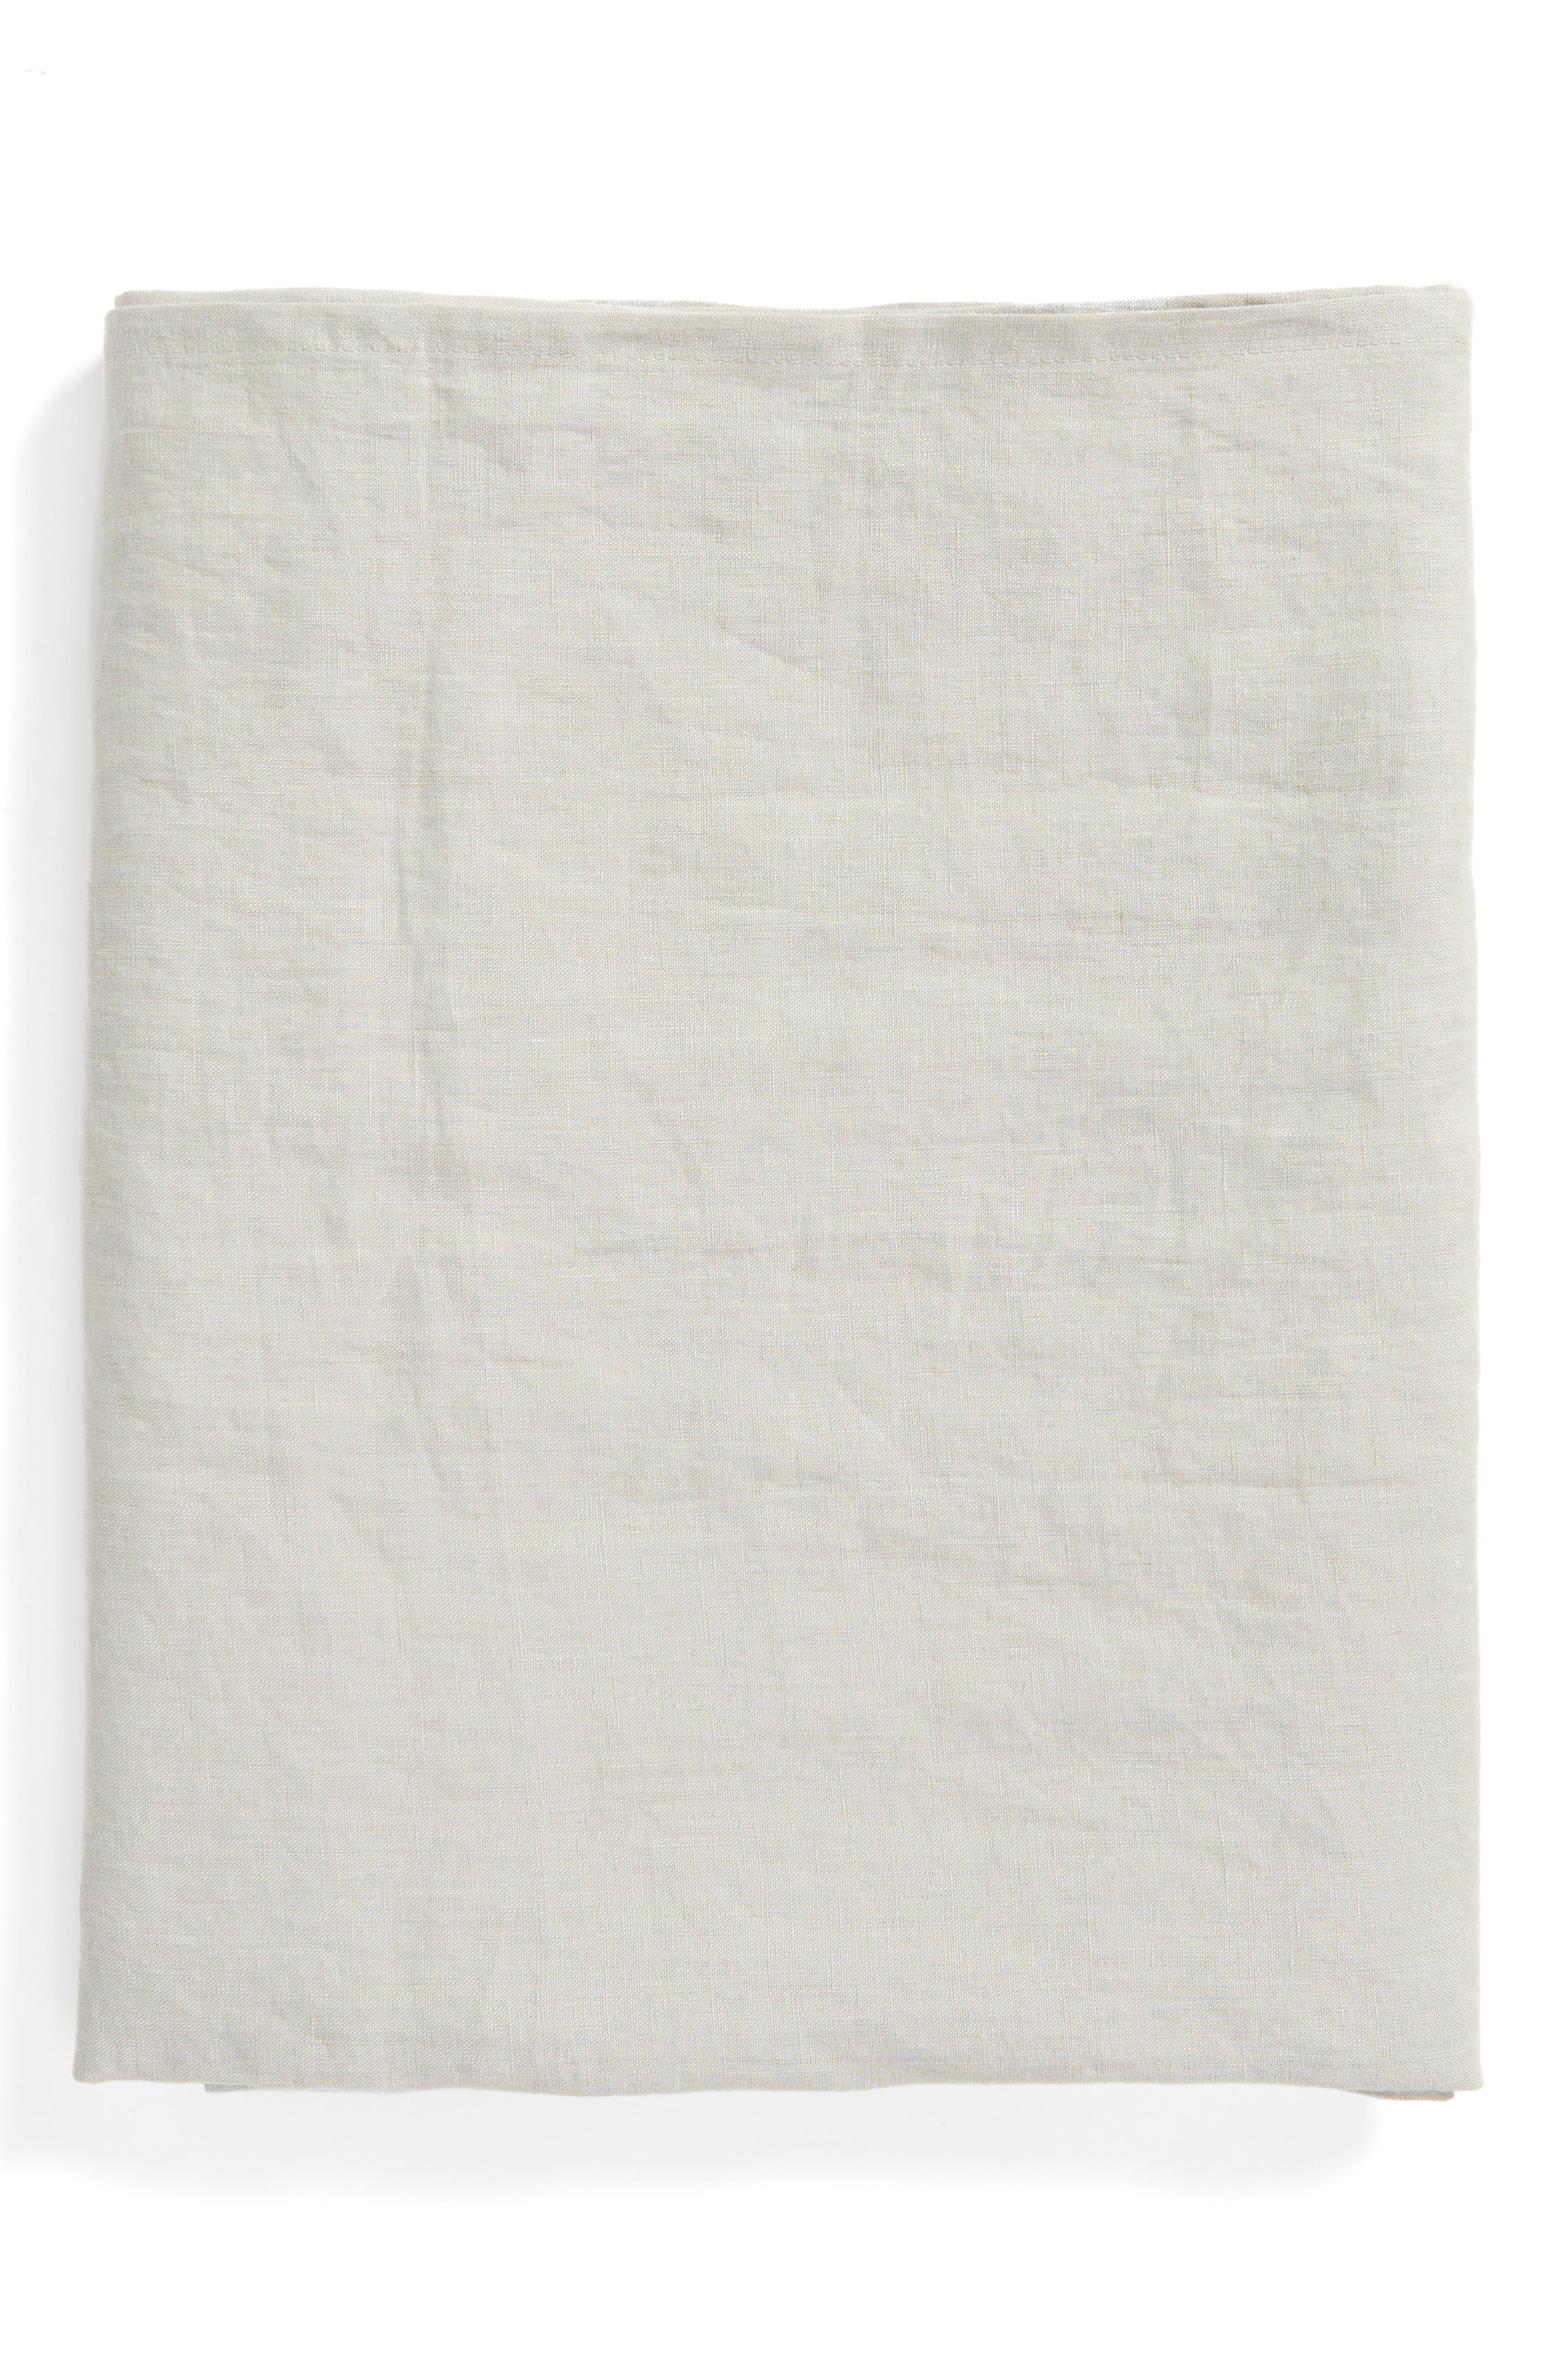 Washed Linen Tablecloth,                         Main,                         color,